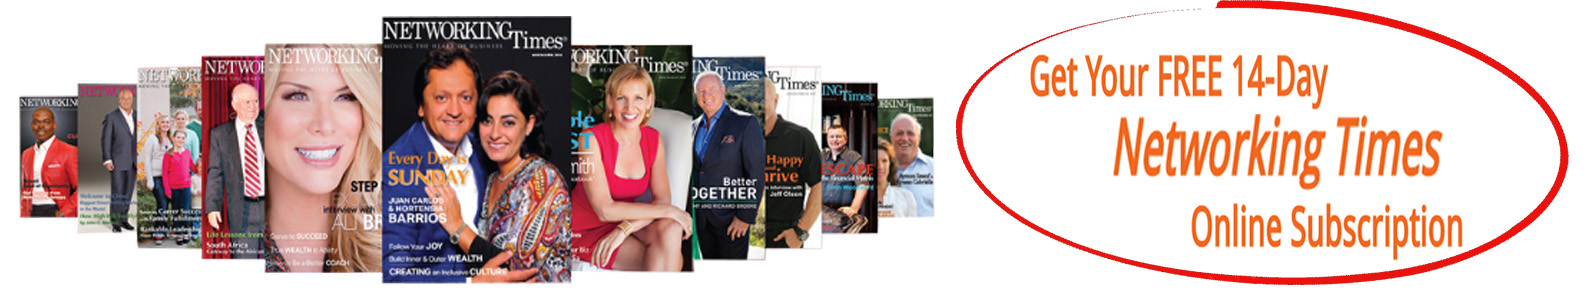 Get Your FREE 14-Day Networking Times Subscription